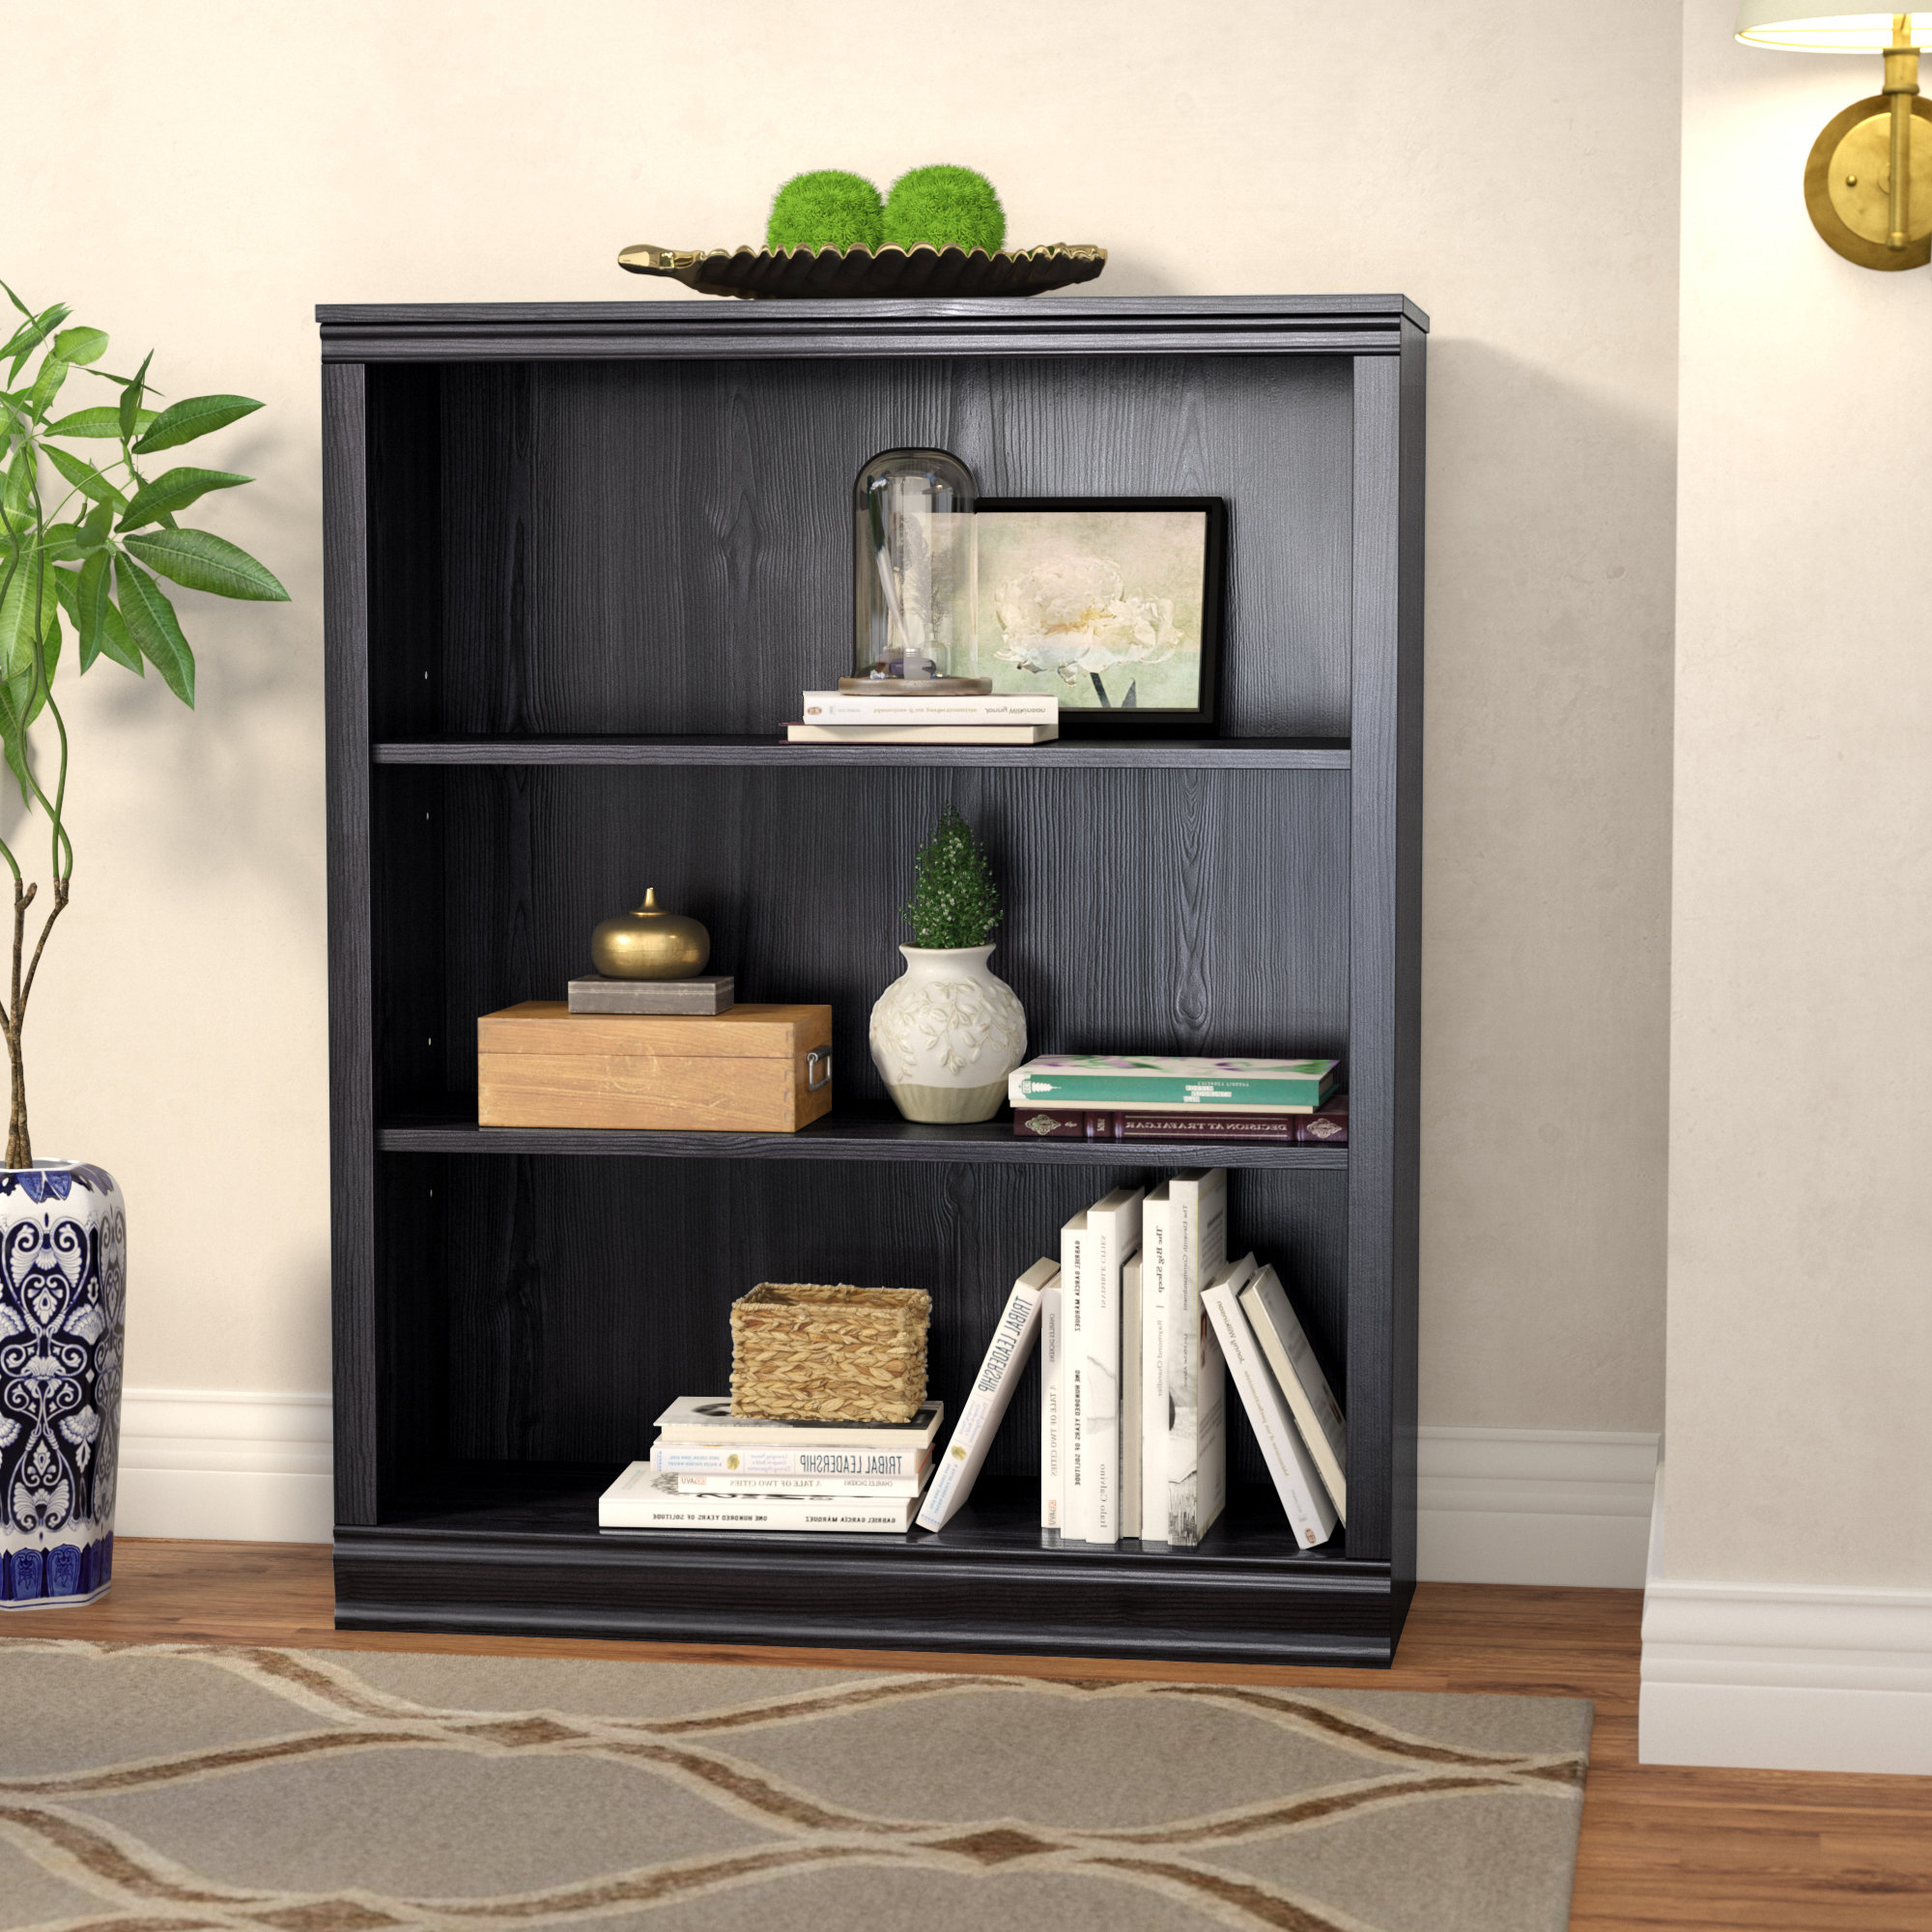 Widely Used Gianni Standard Bookcases Throughout Caines 3 Shelf Standard Bookcase (View 14 of 20)